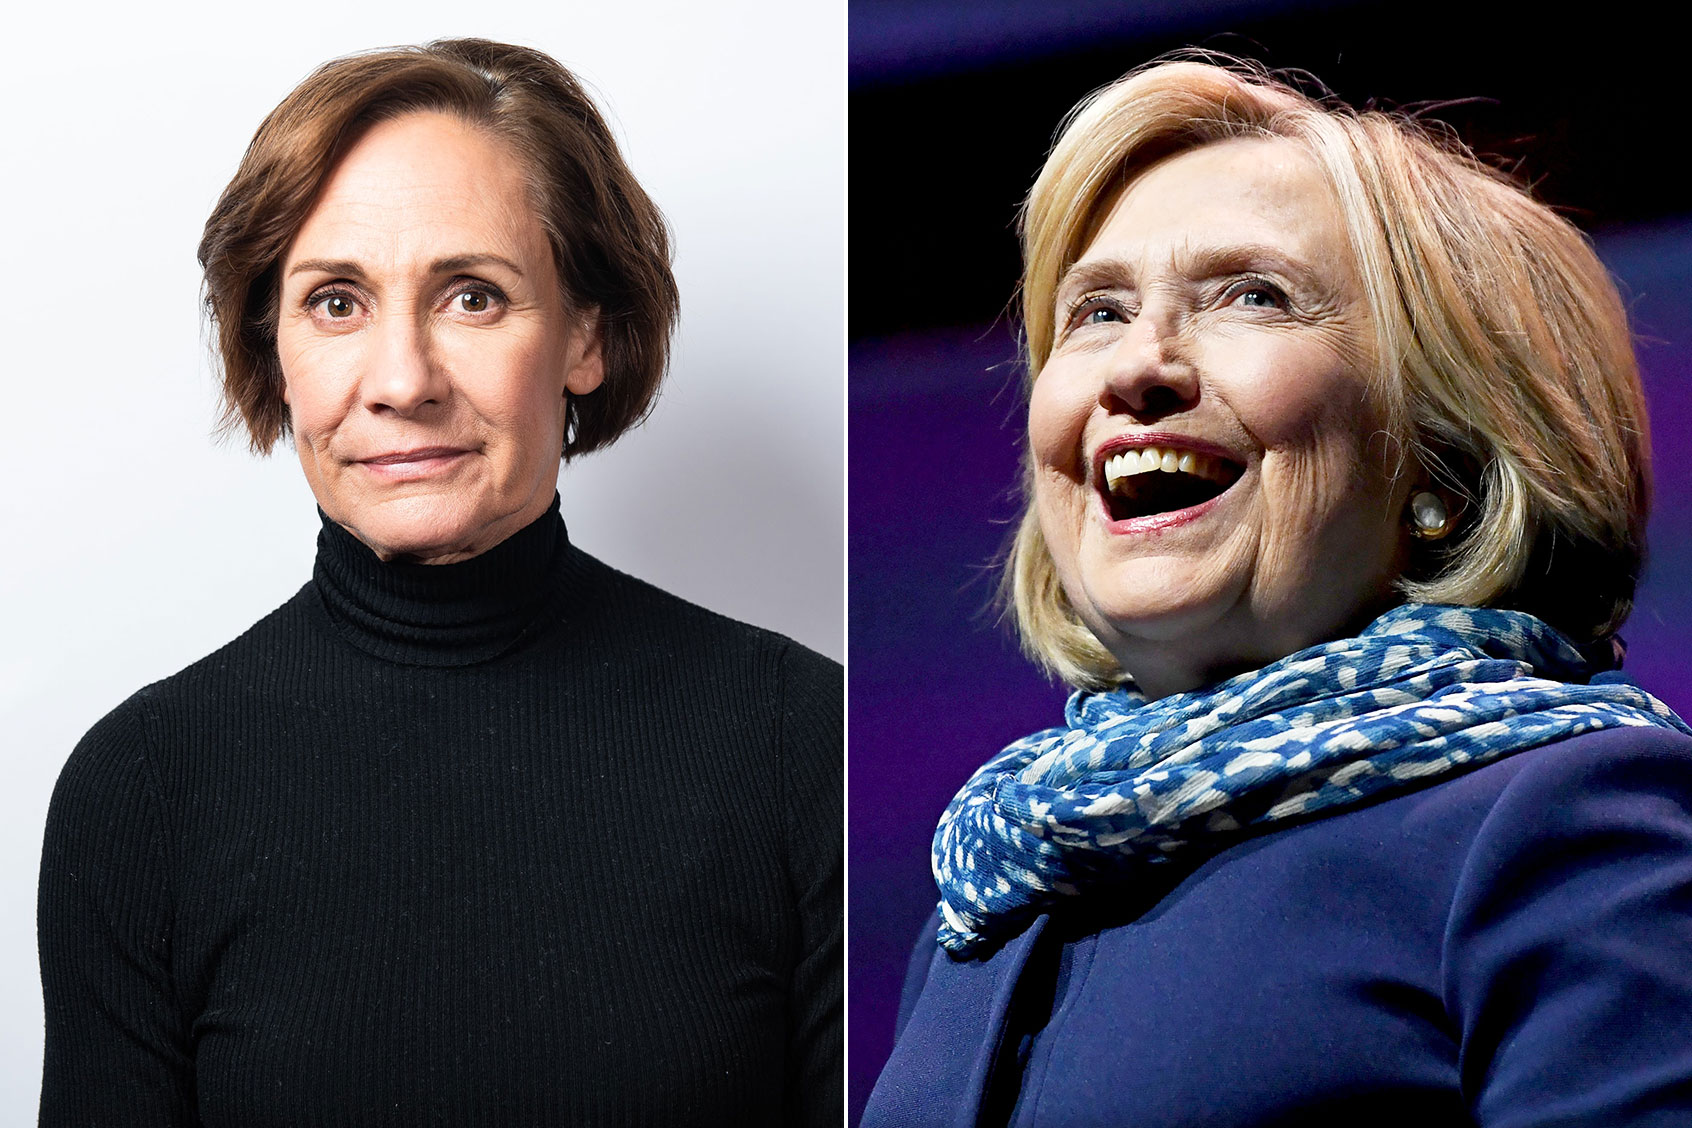 Laurie Metcalf to Play Hillary Clinton in New Broadway Play, 'Hillary and Clinton'